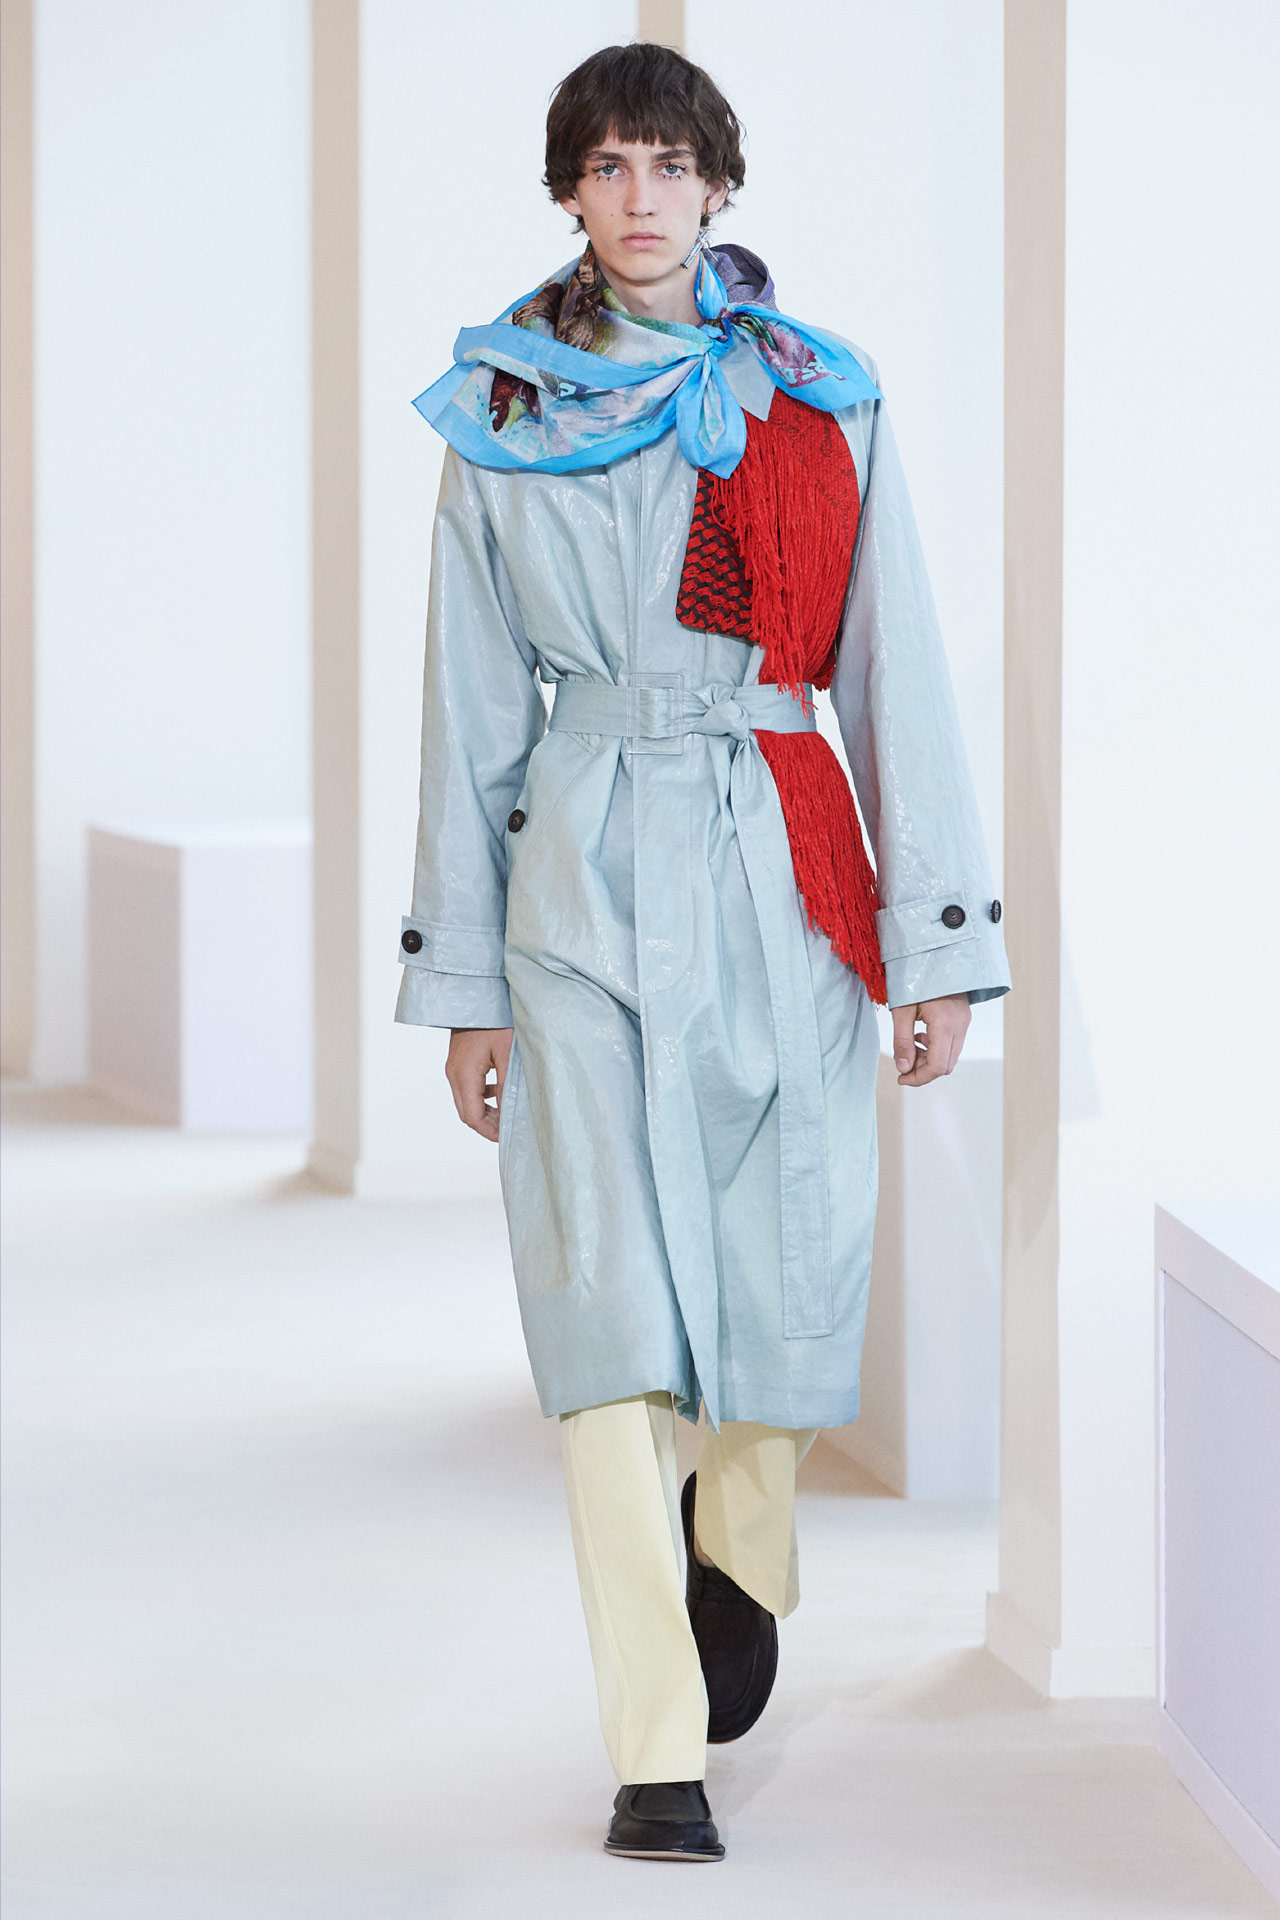 Look Spring/Summer, image 40